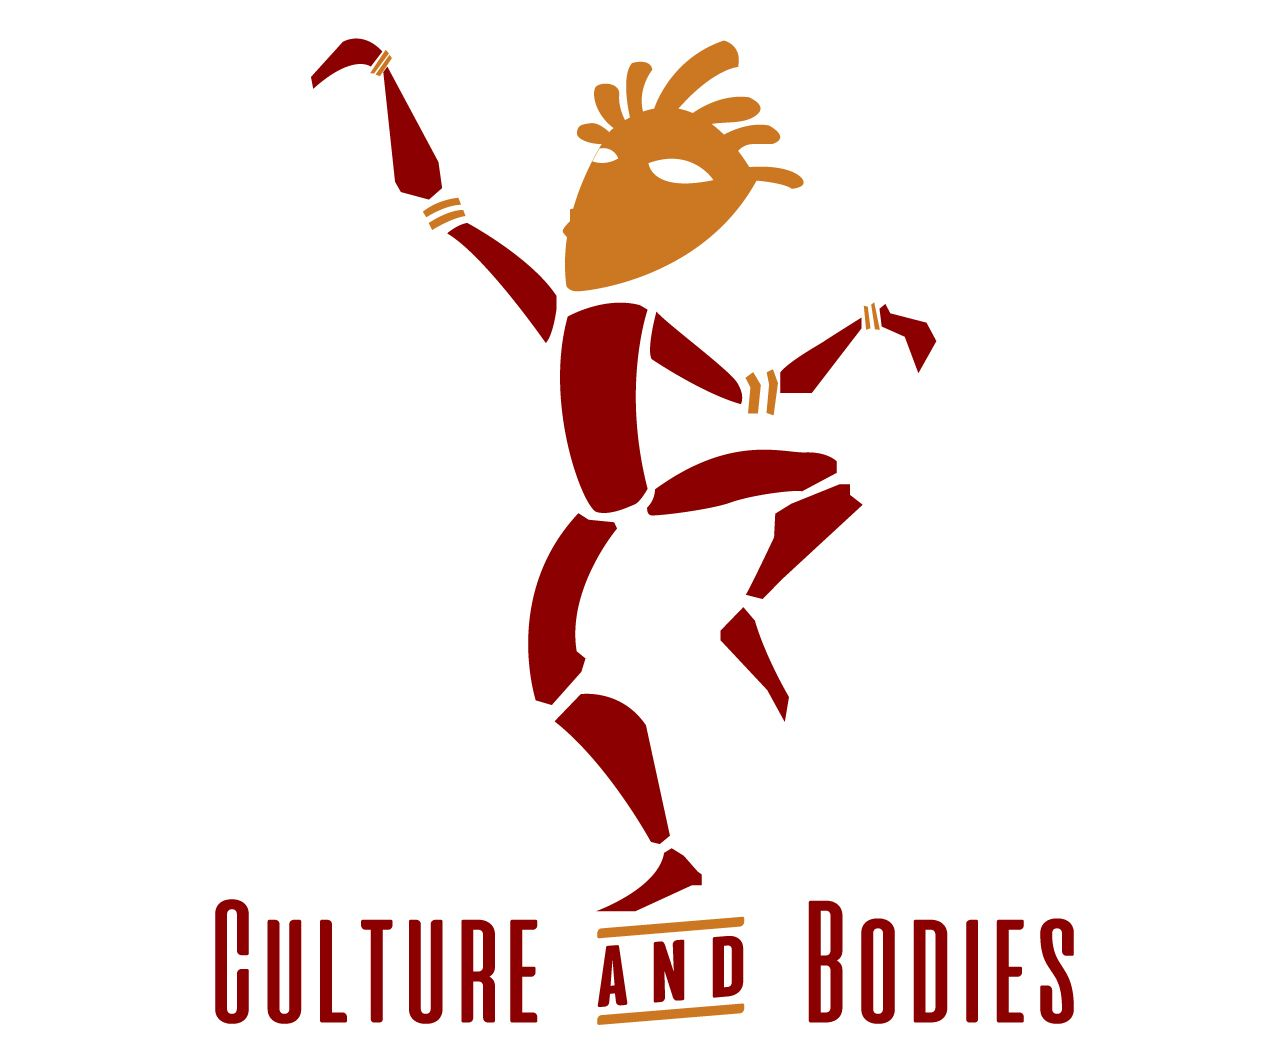 culture and bodies logo